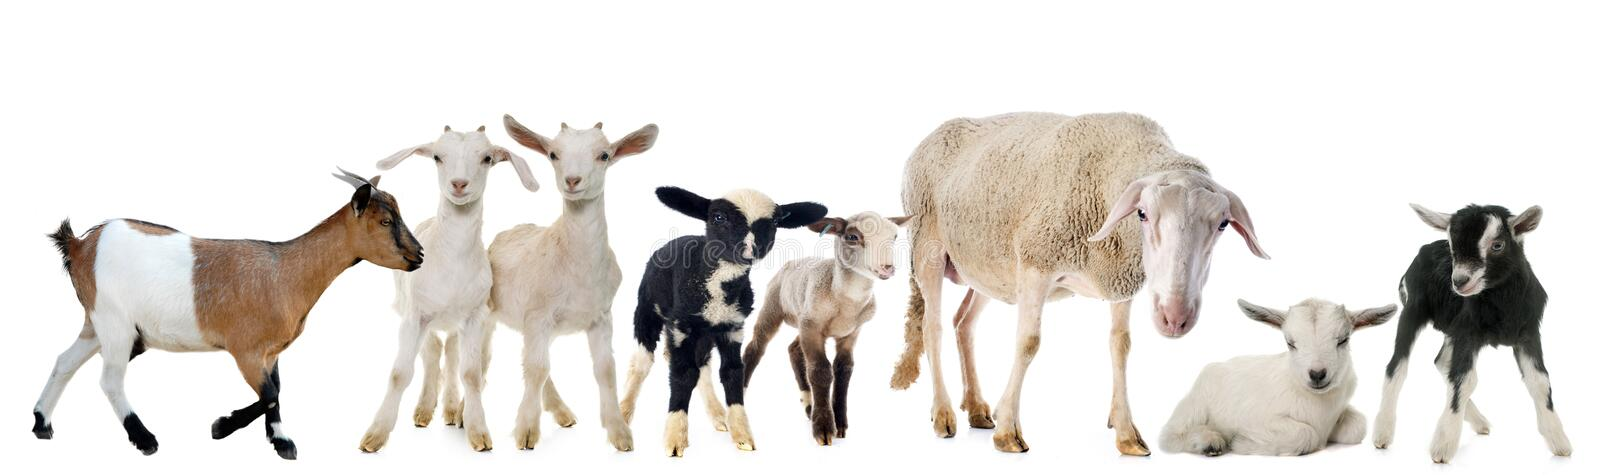 Goat, kid, ewe and lambs. Goat and ewe in front of white background royalty free stock photo